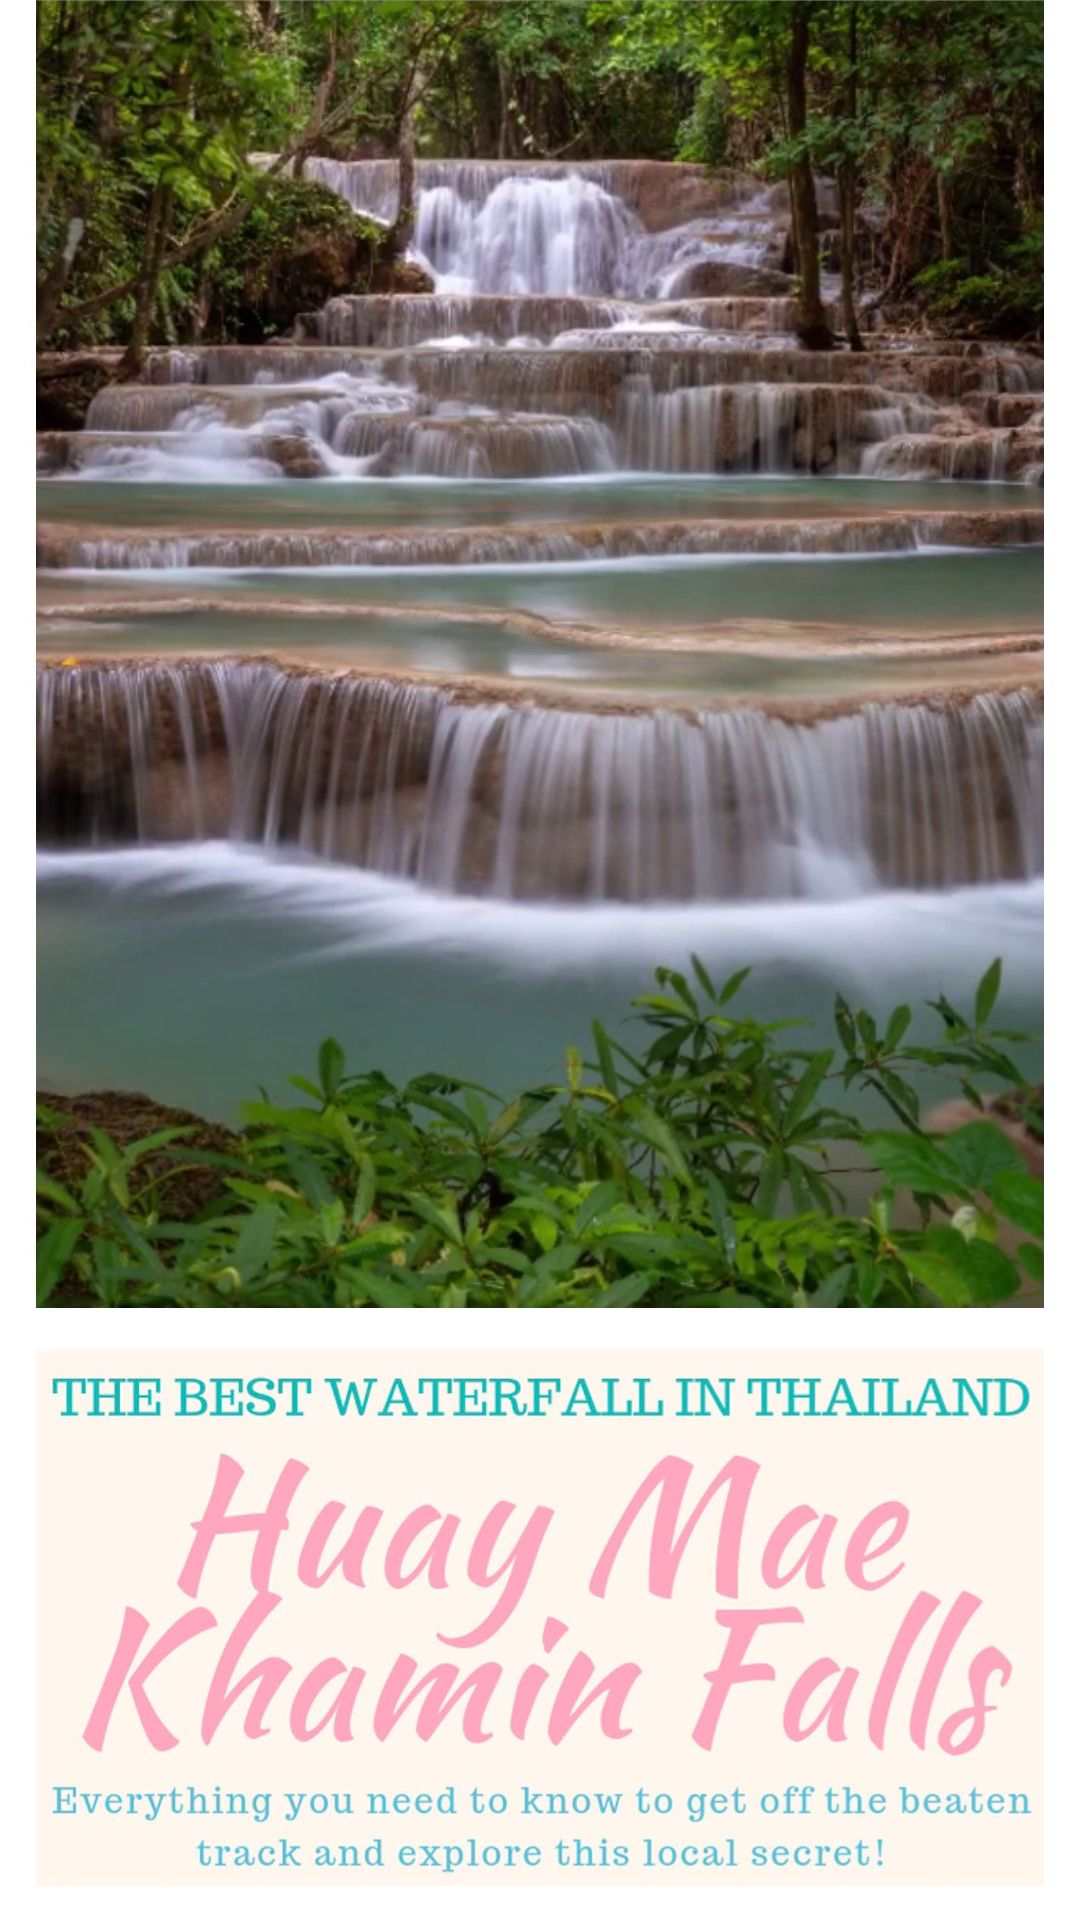 Huay Mae Khamin Waterfall is a local secret and hidden gem. Seven tiers of cascading beauty are nestled amidst a jungle landscape that makes this a must-see destination on any Thailand itinerary! This complete travel guide has everything you need to know to plan your adventure to Huai Mae Khamin Falls.